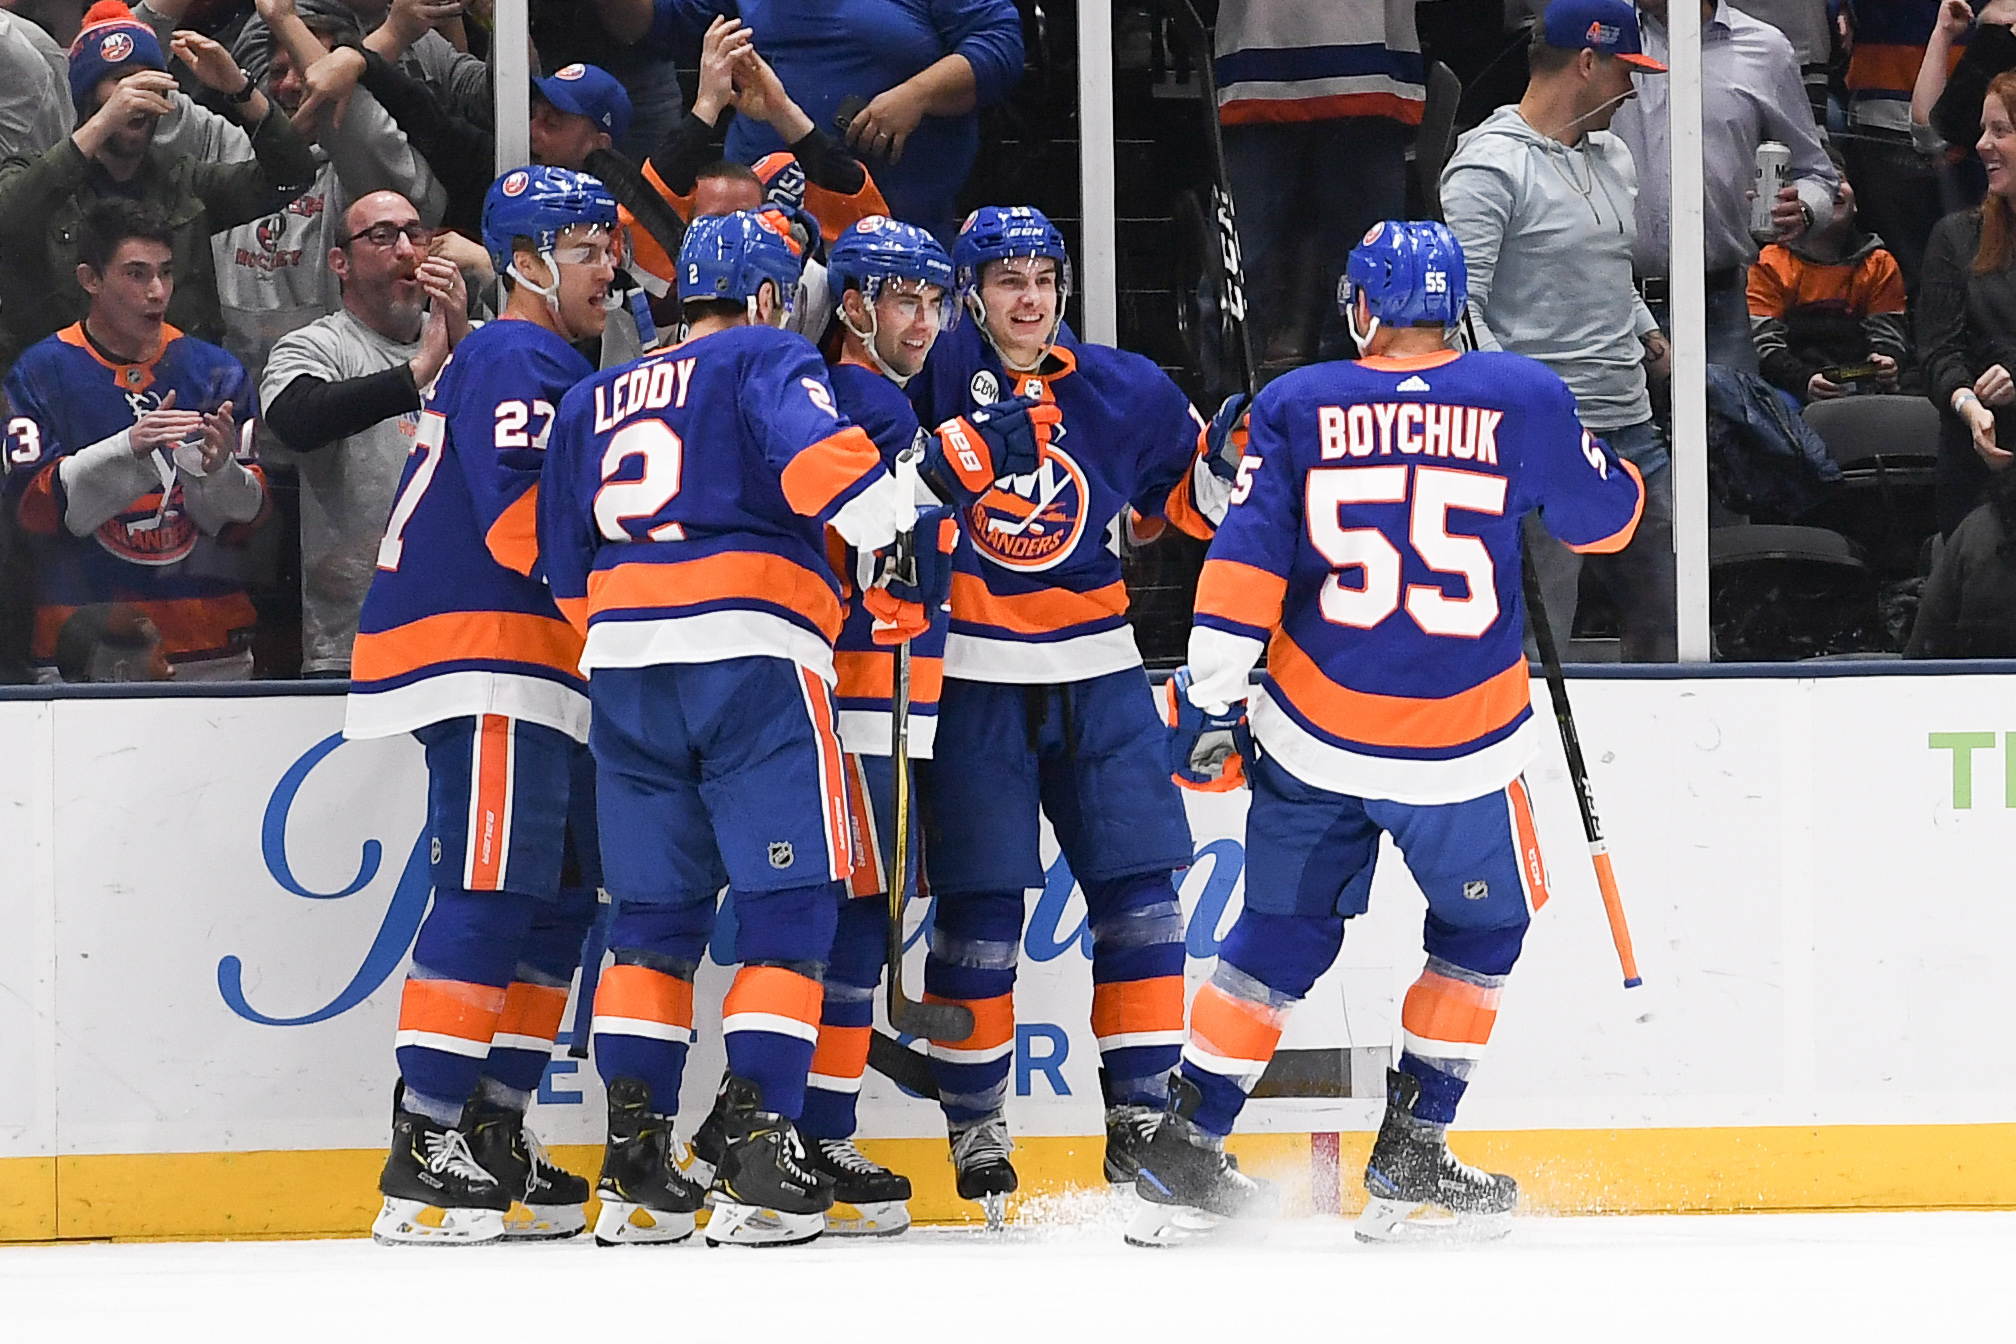 Islanders reward fans with playoff-clinching win on Coliseum ice